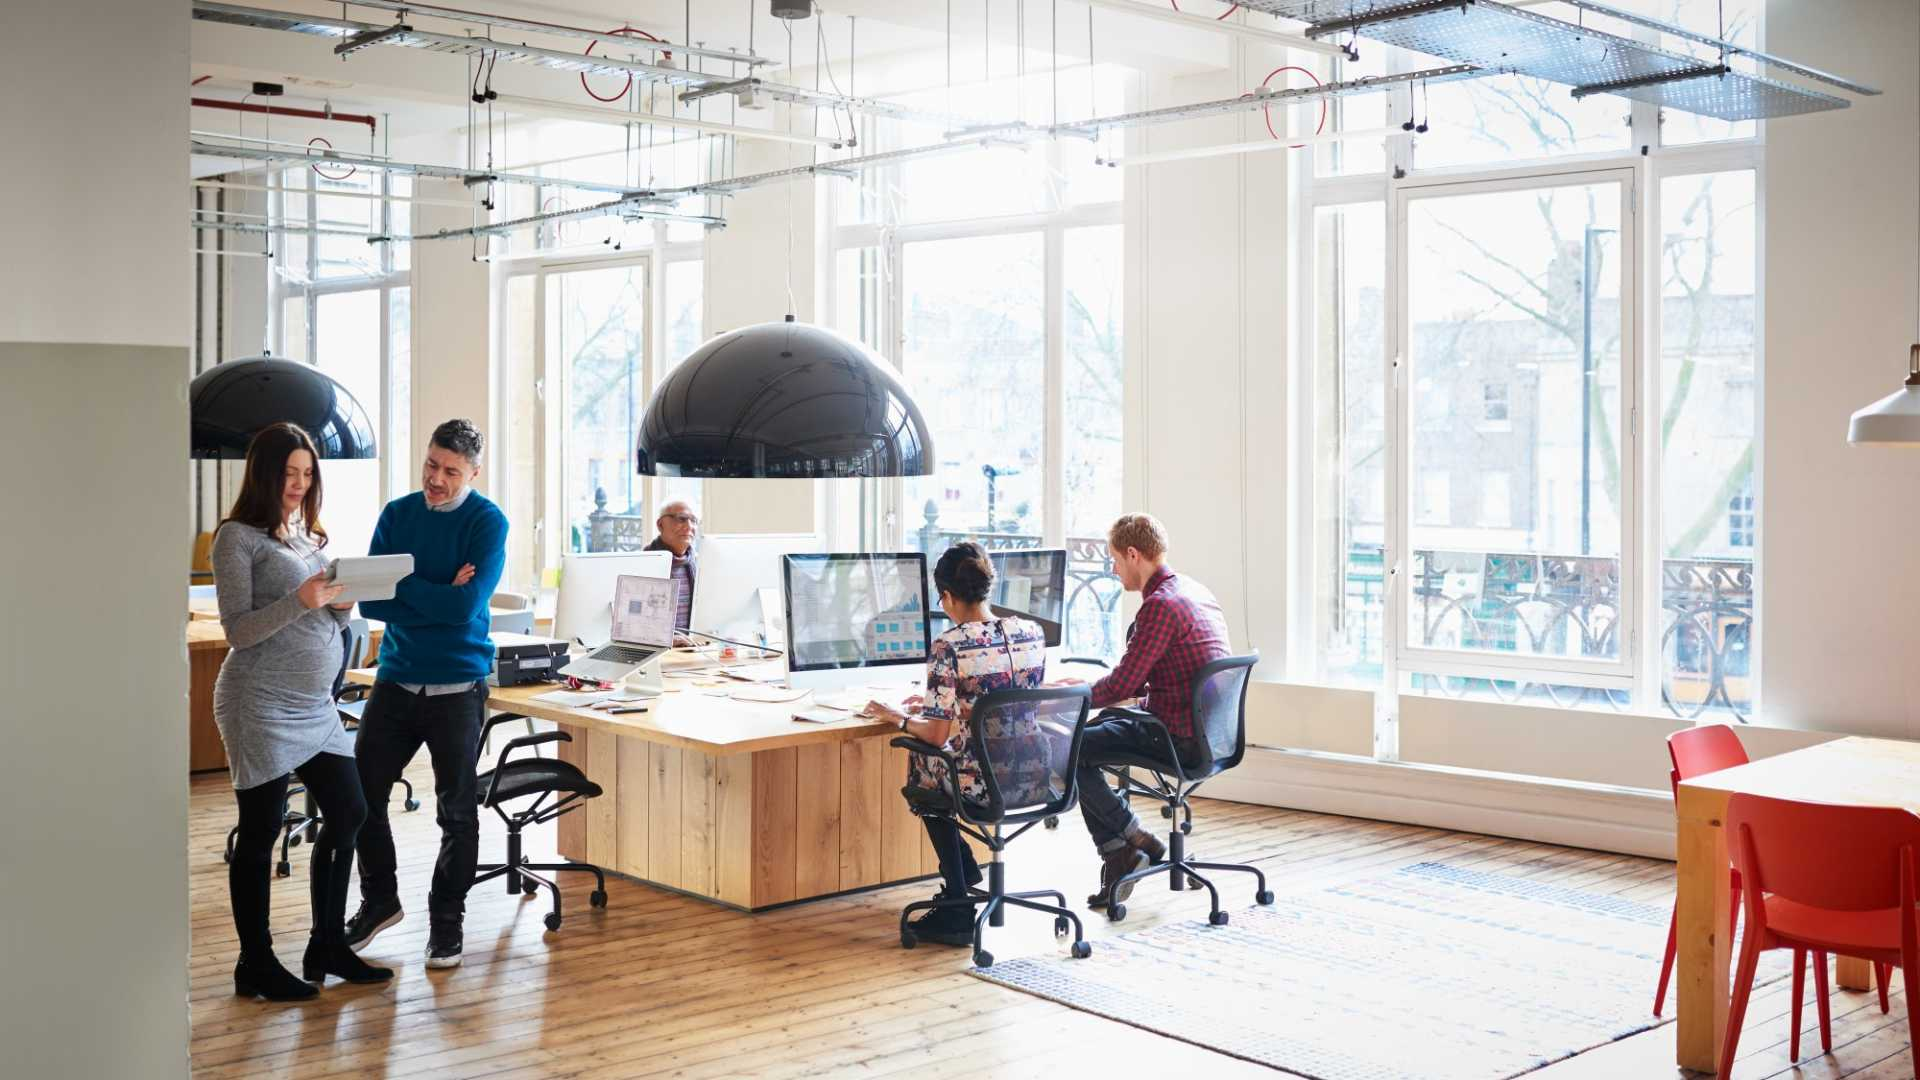 6 Questions to Ask Before Investing in Office Tech